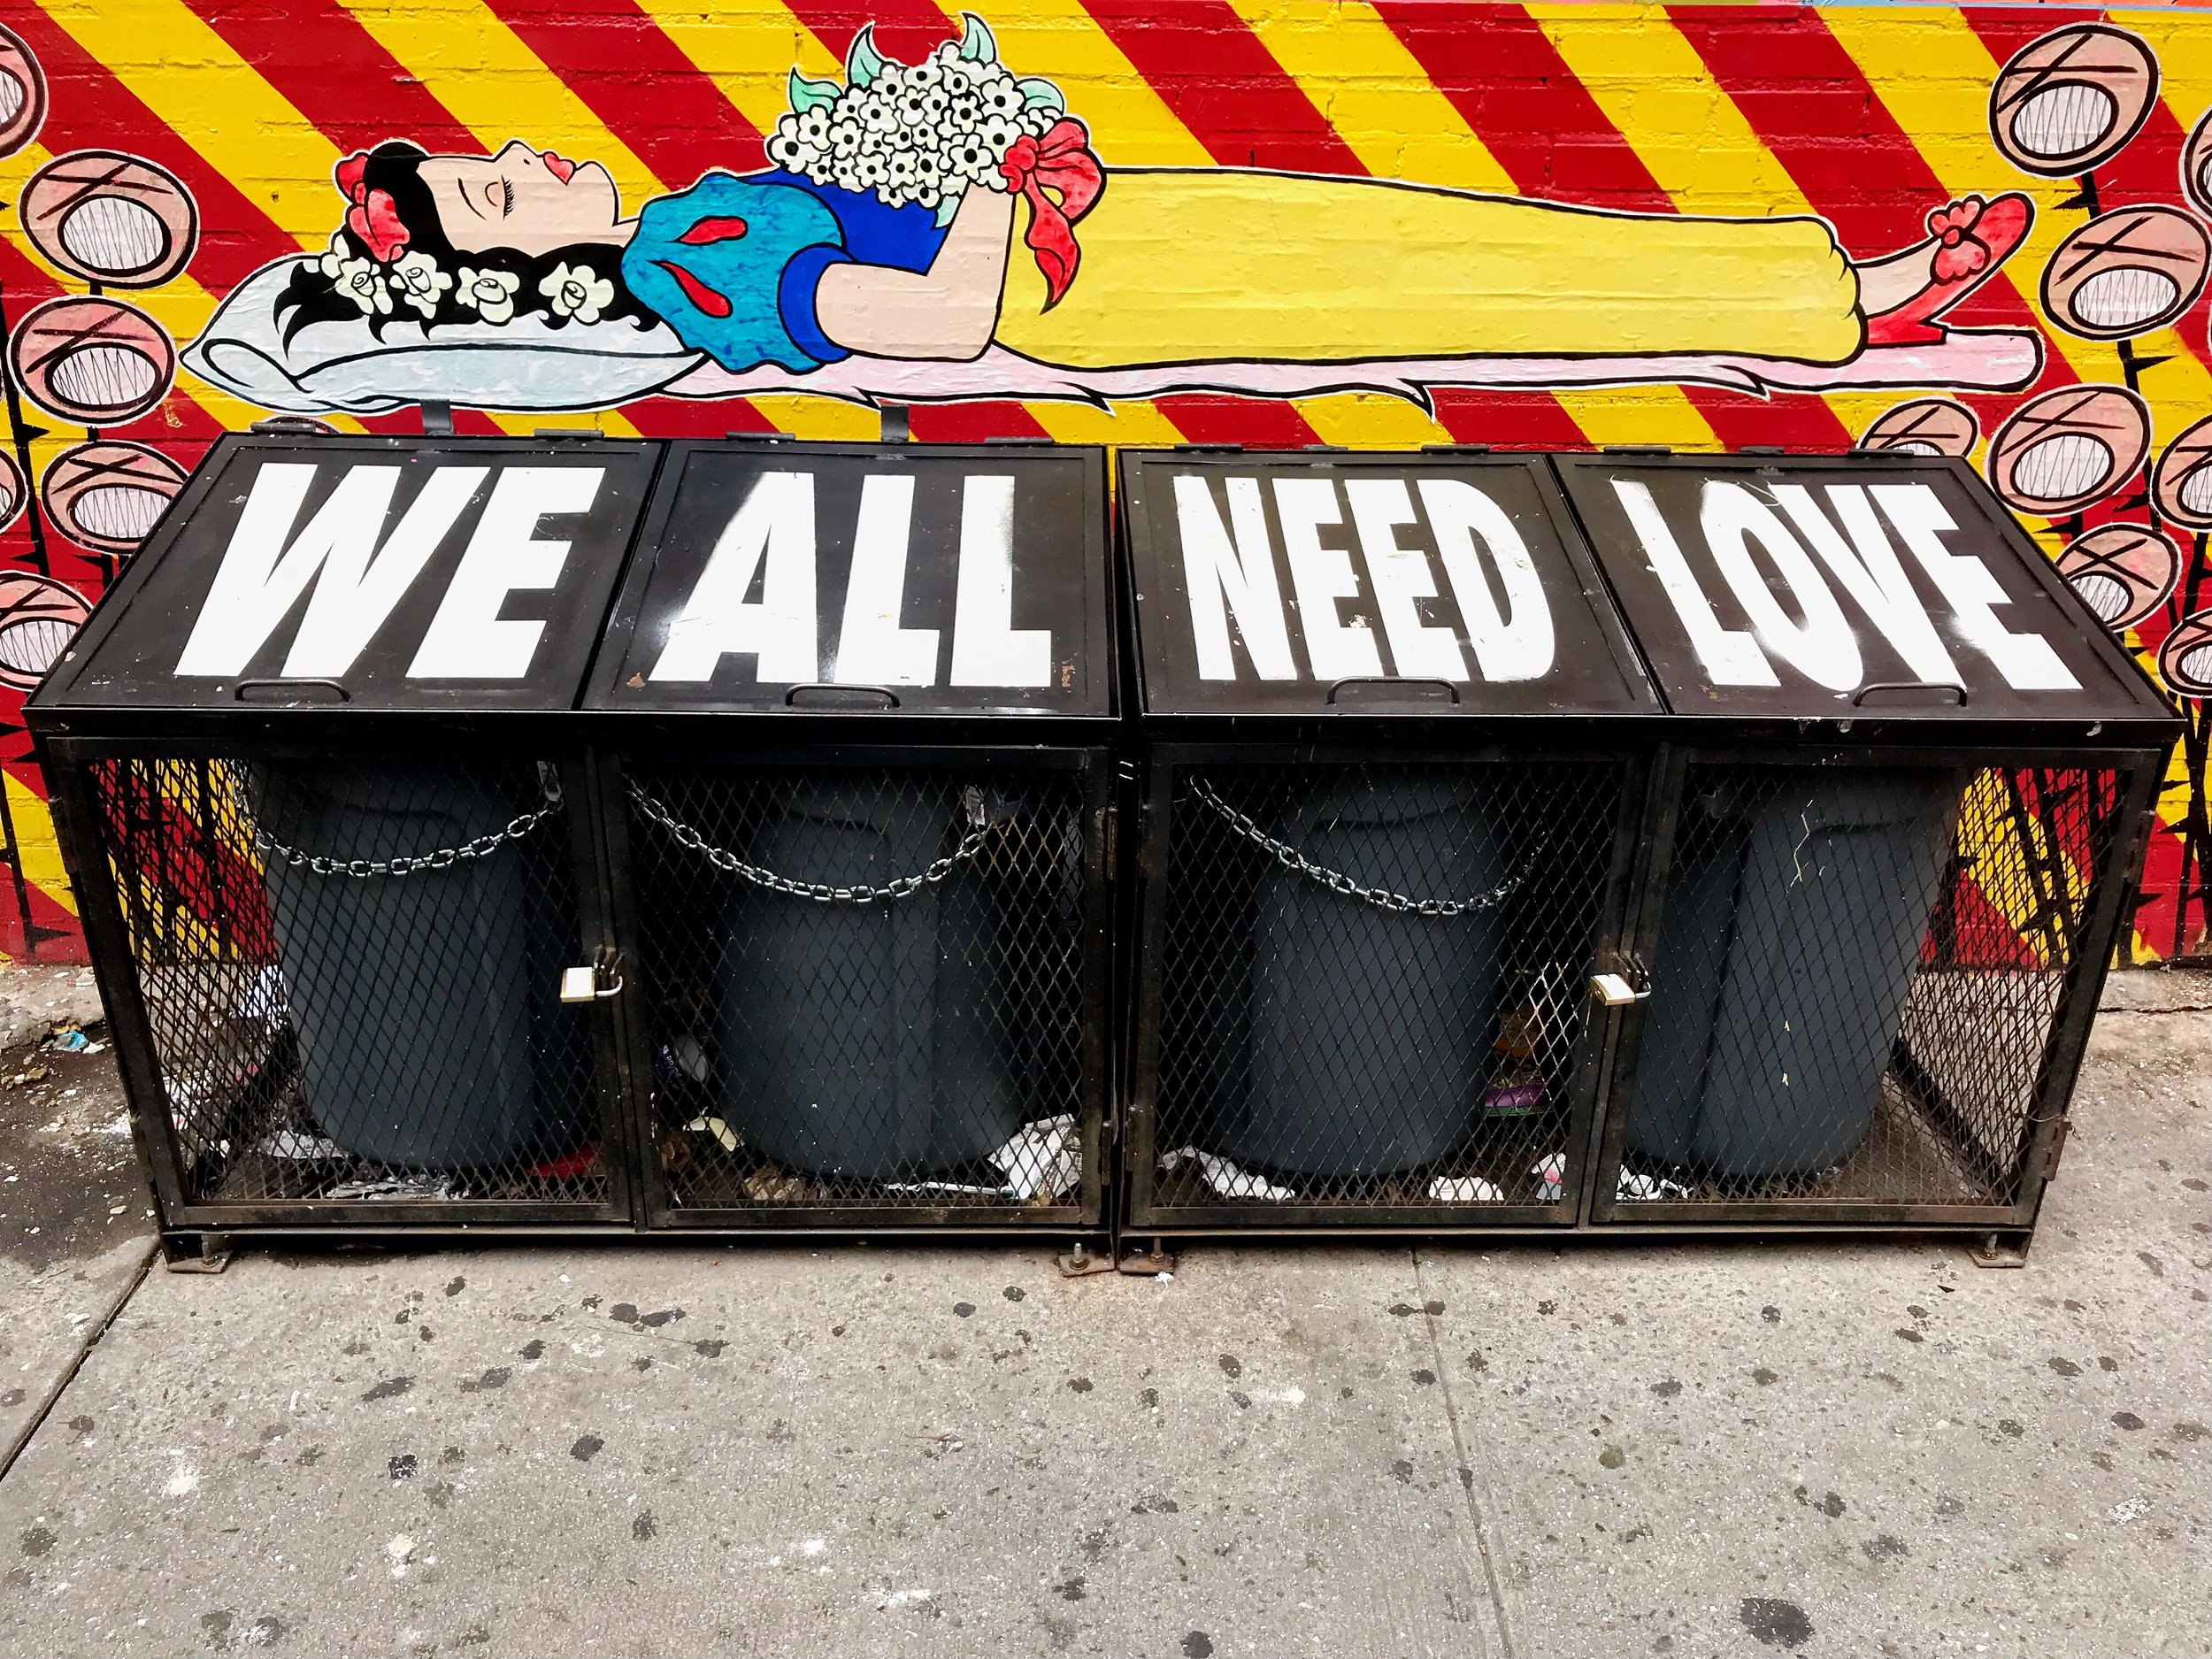 All we need is love snow white.jpg